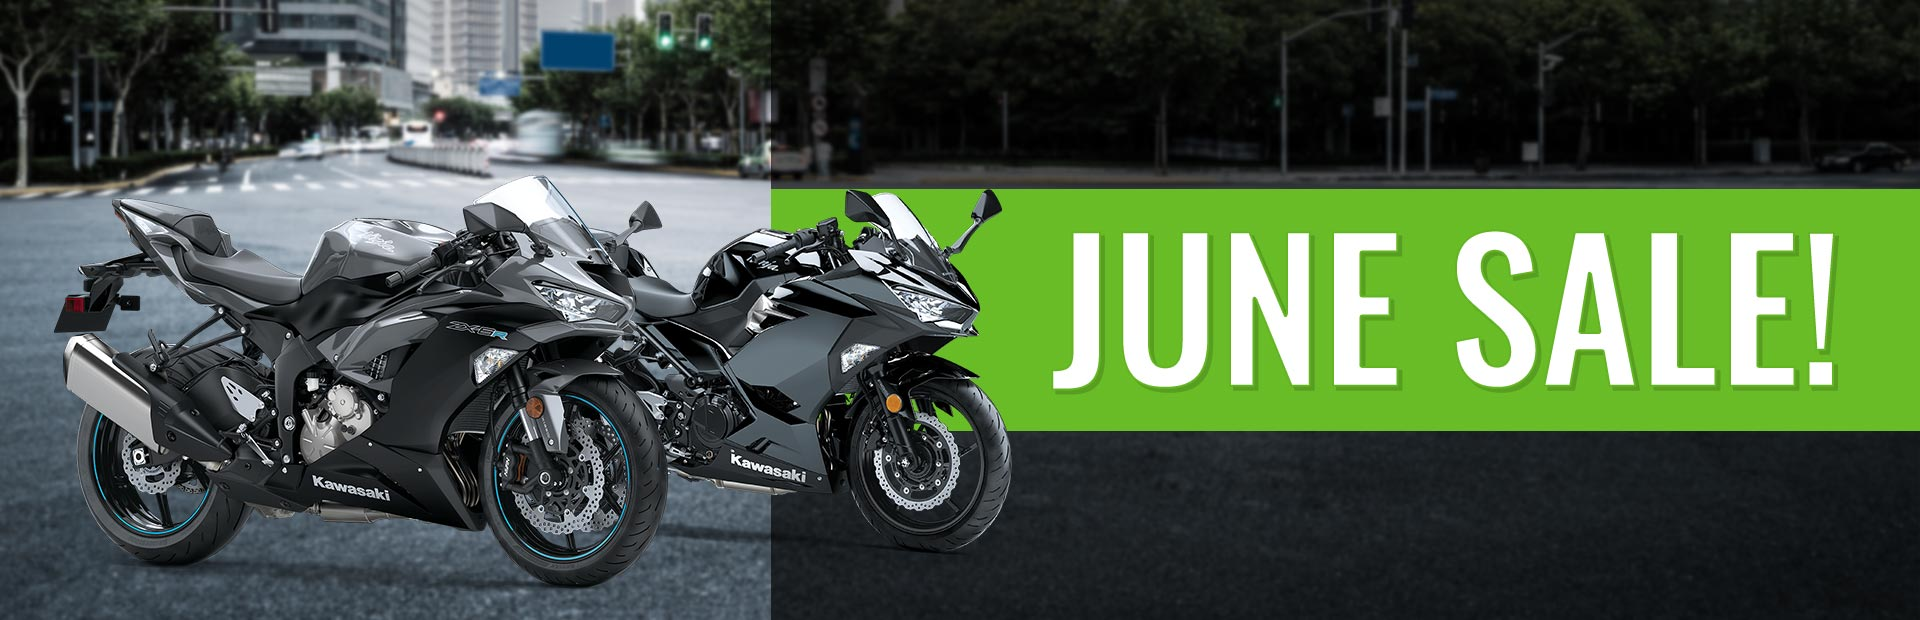 June Sale! Come a check out our exclusive sales for June!